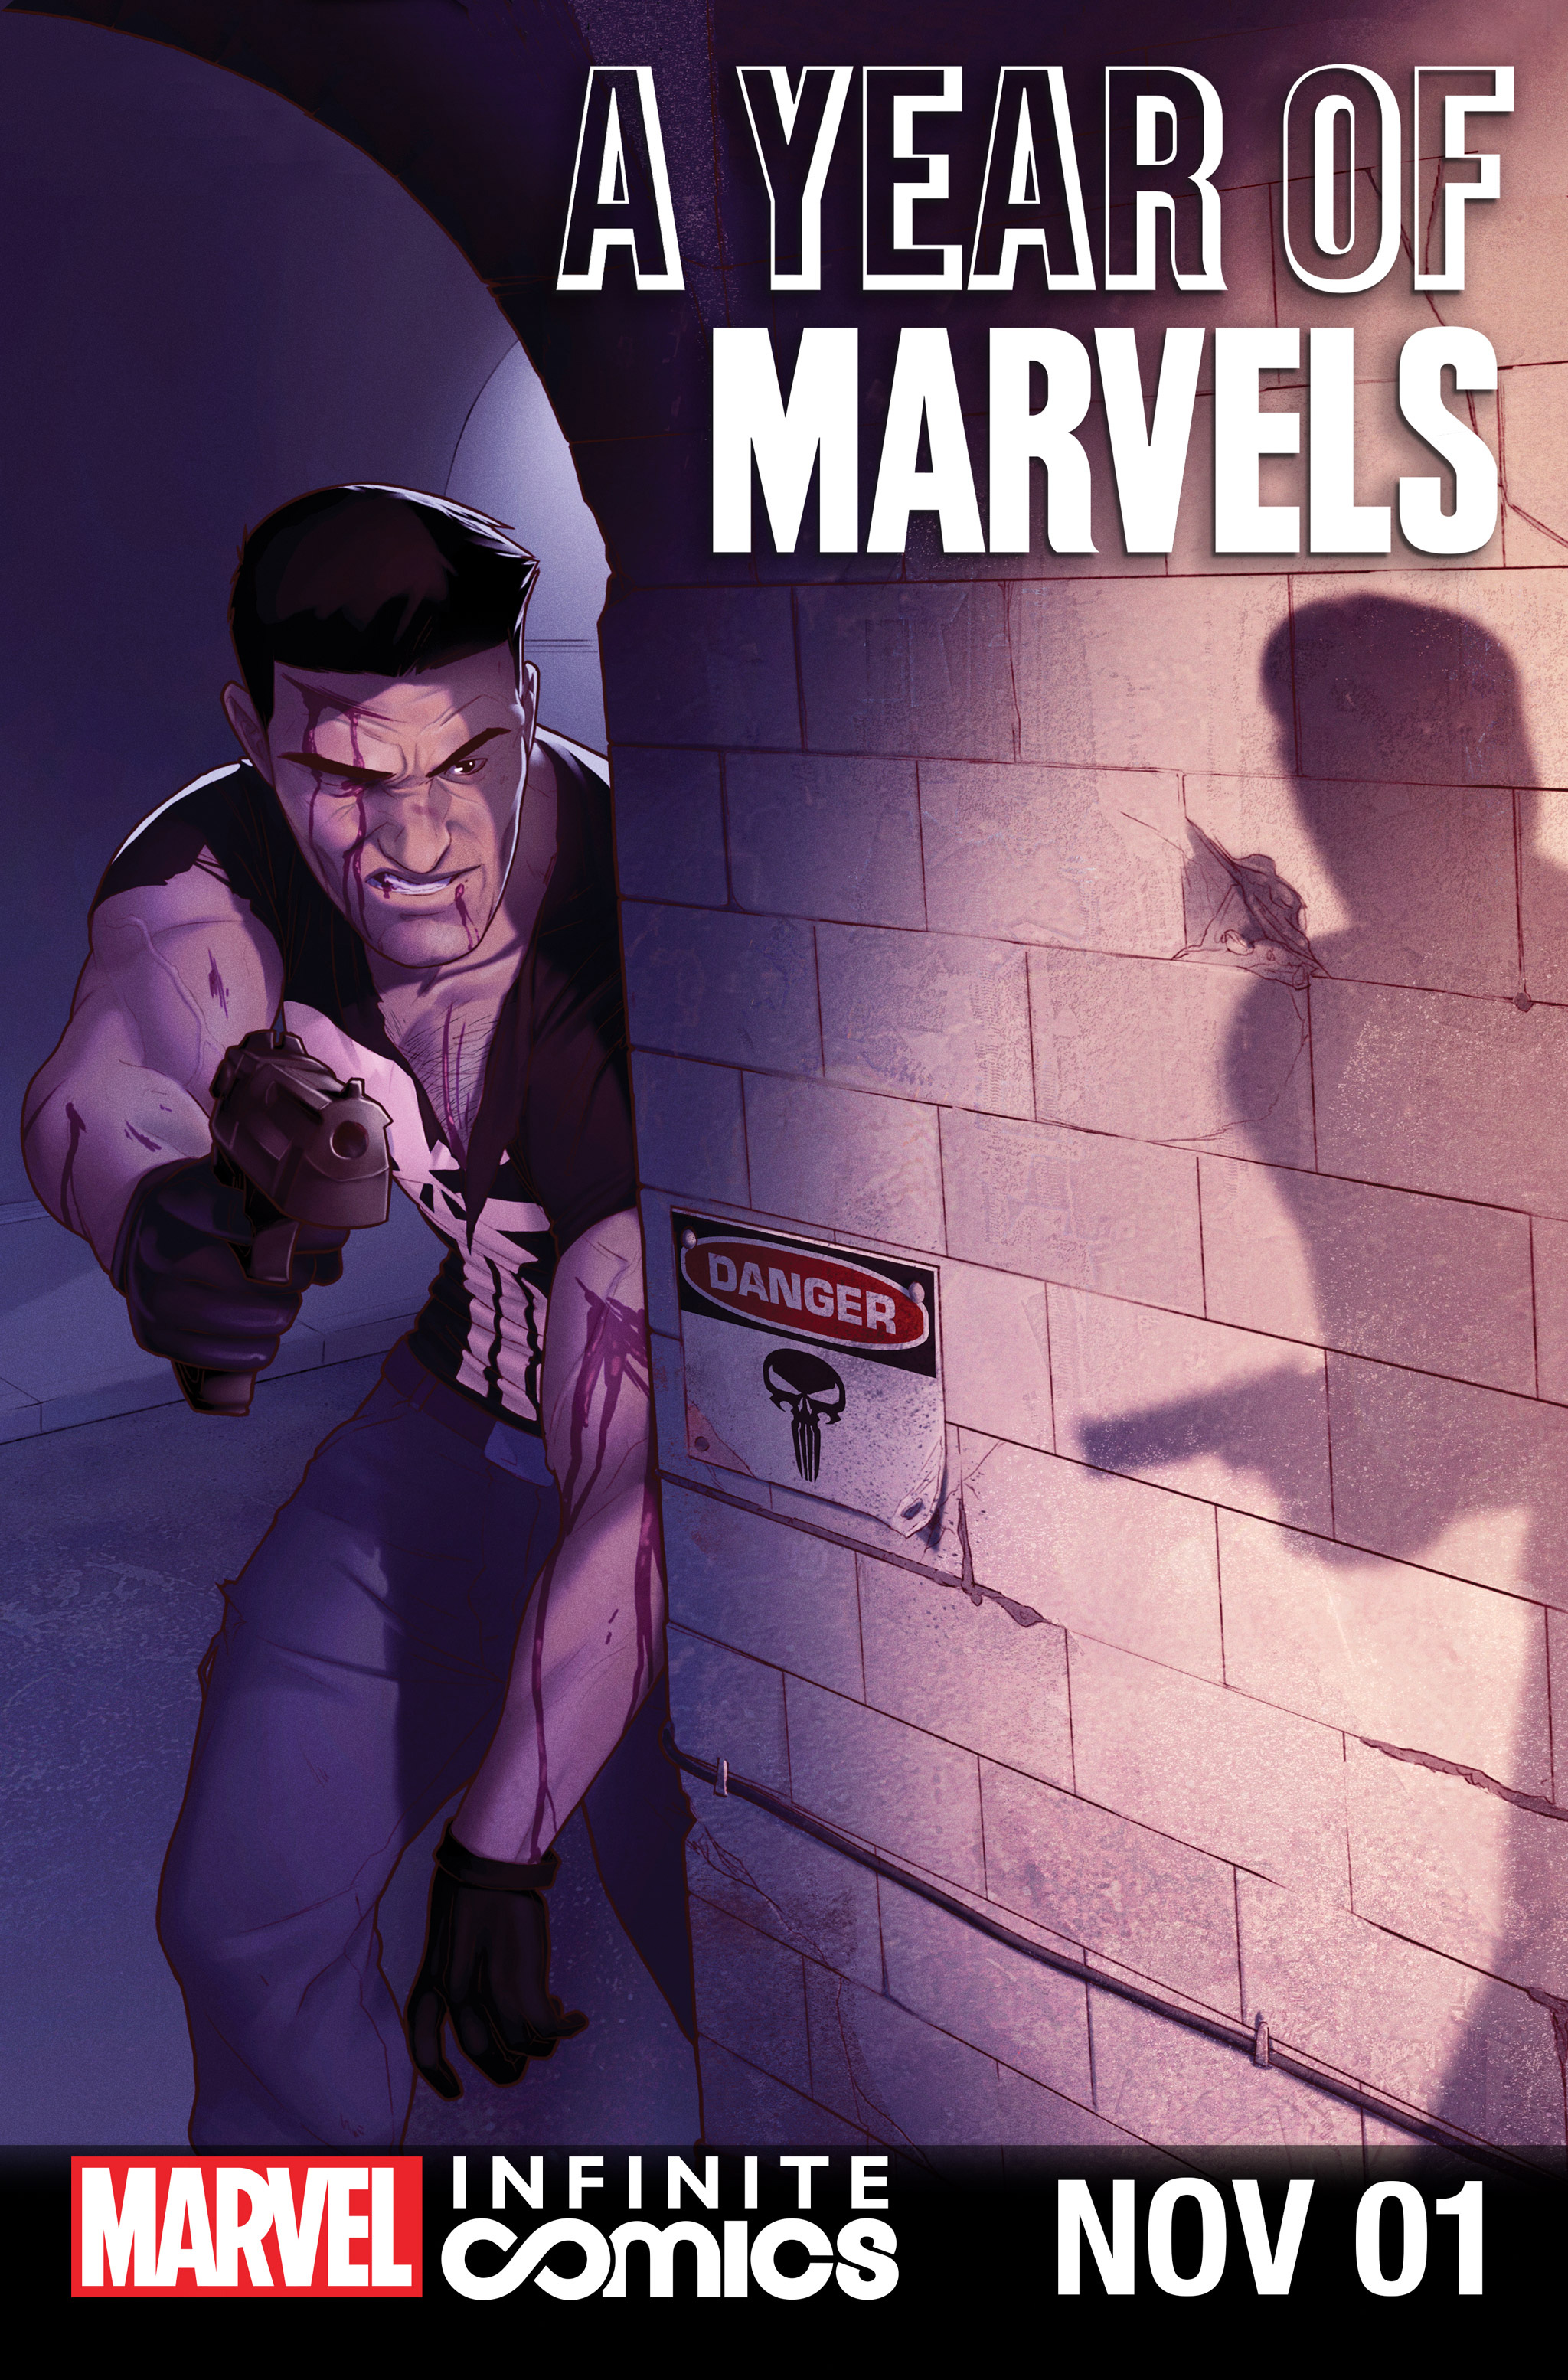 Year of Marvels: November Infinite Comic Vol 1